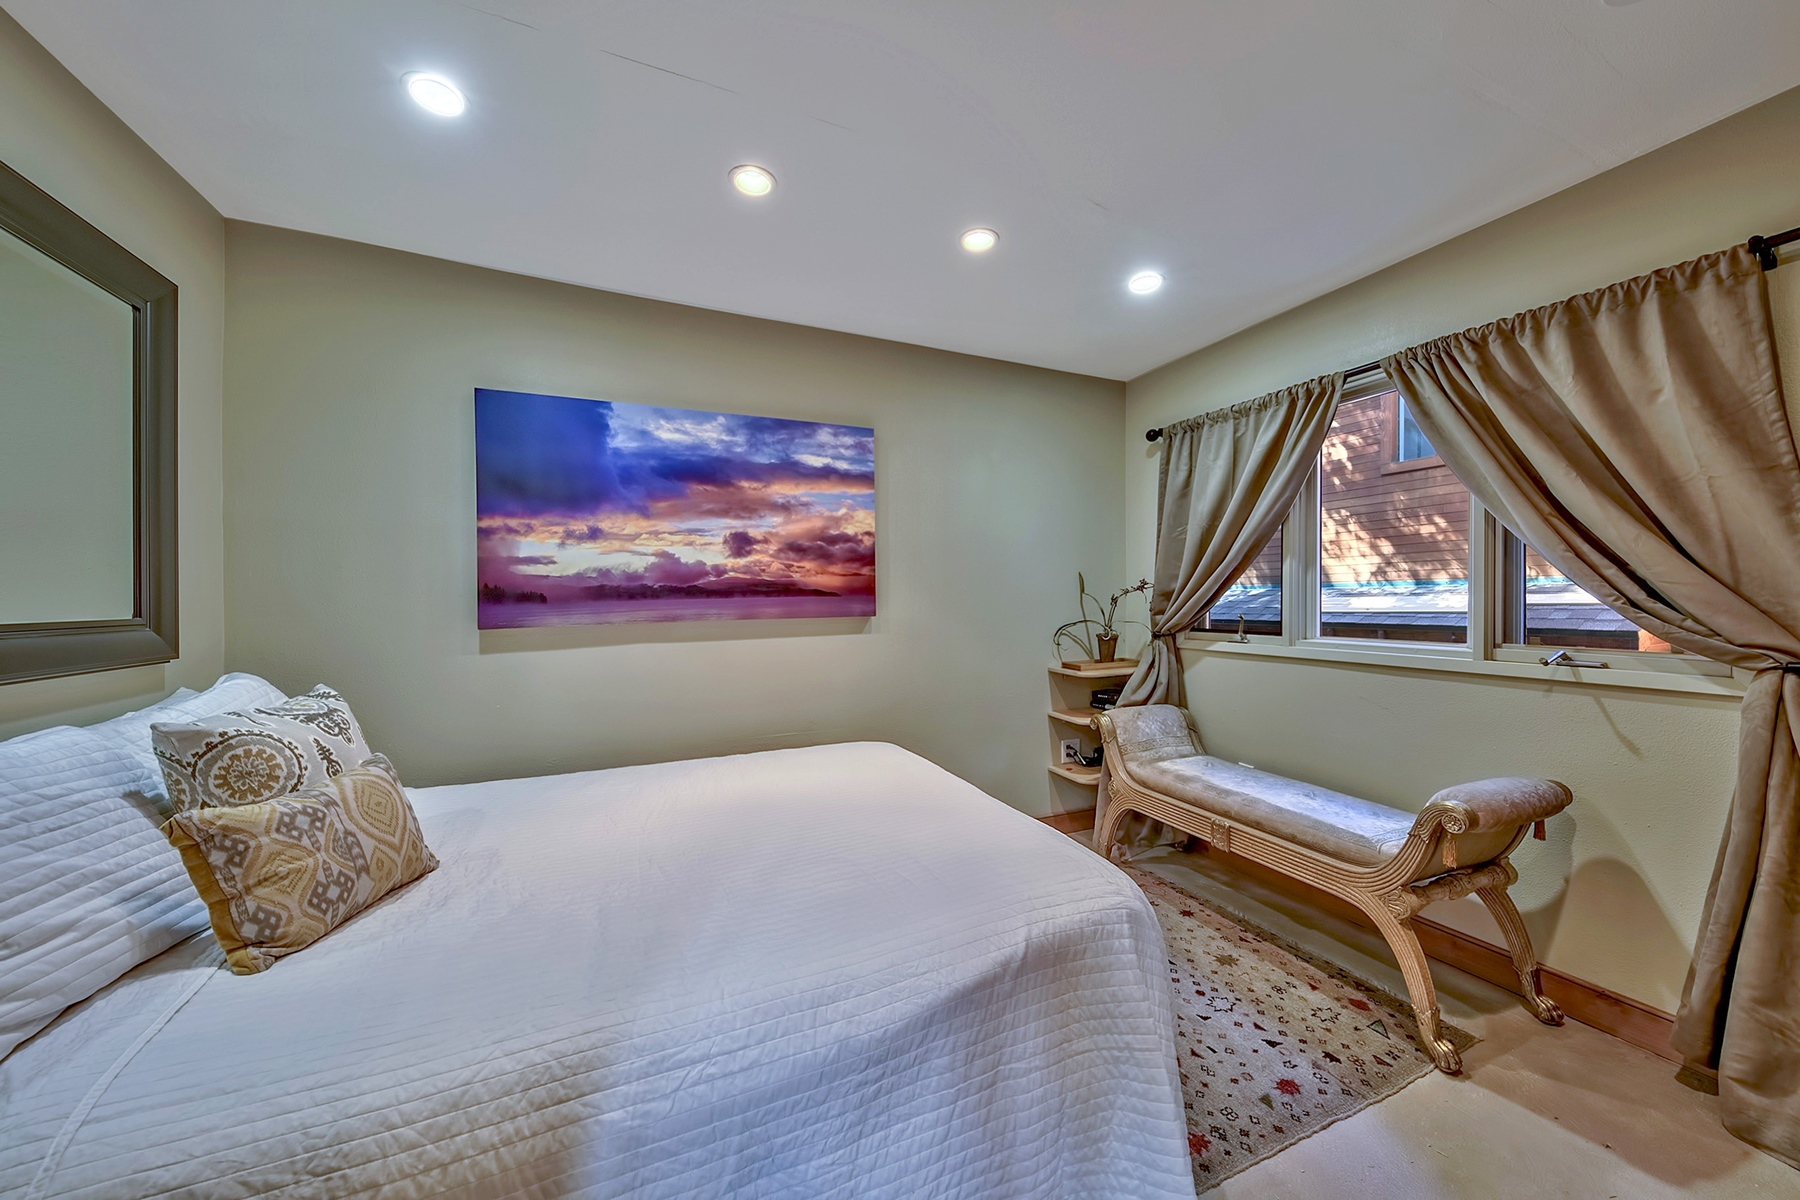 Additional photo for property listing at 8730 Brockway Vista Avenue,  Kings Beach, CA 96143 8730 Brockway Vista Avenue Kings Beach, California 96143 United States